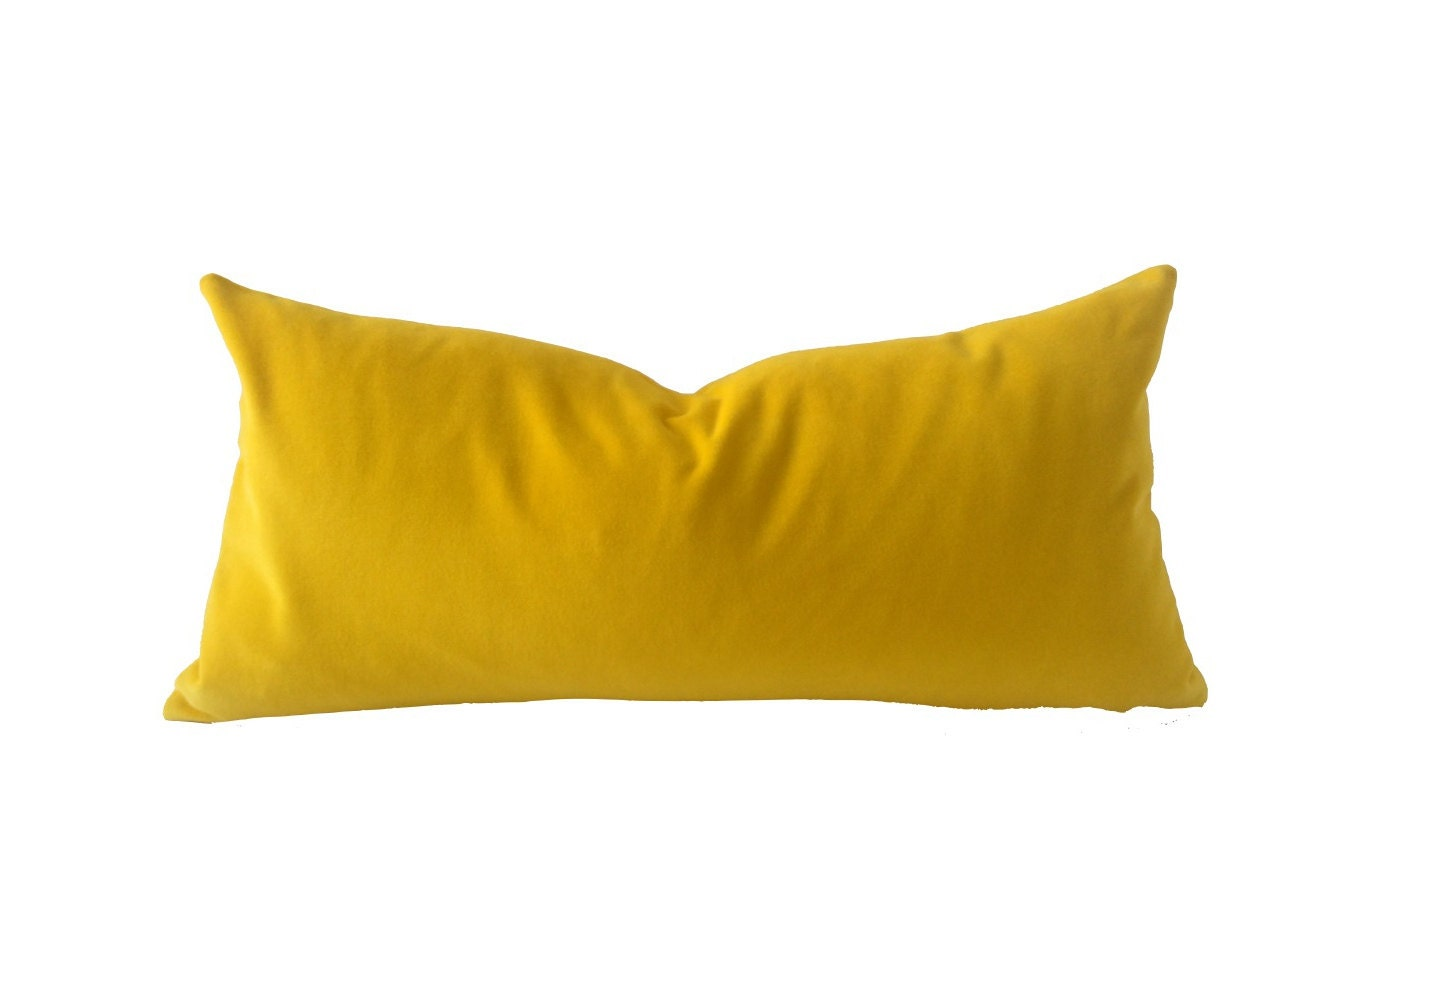 Throw Pillow Yellow : Canary Yellow Decorative Bolster Throw Pillow Medium Weight